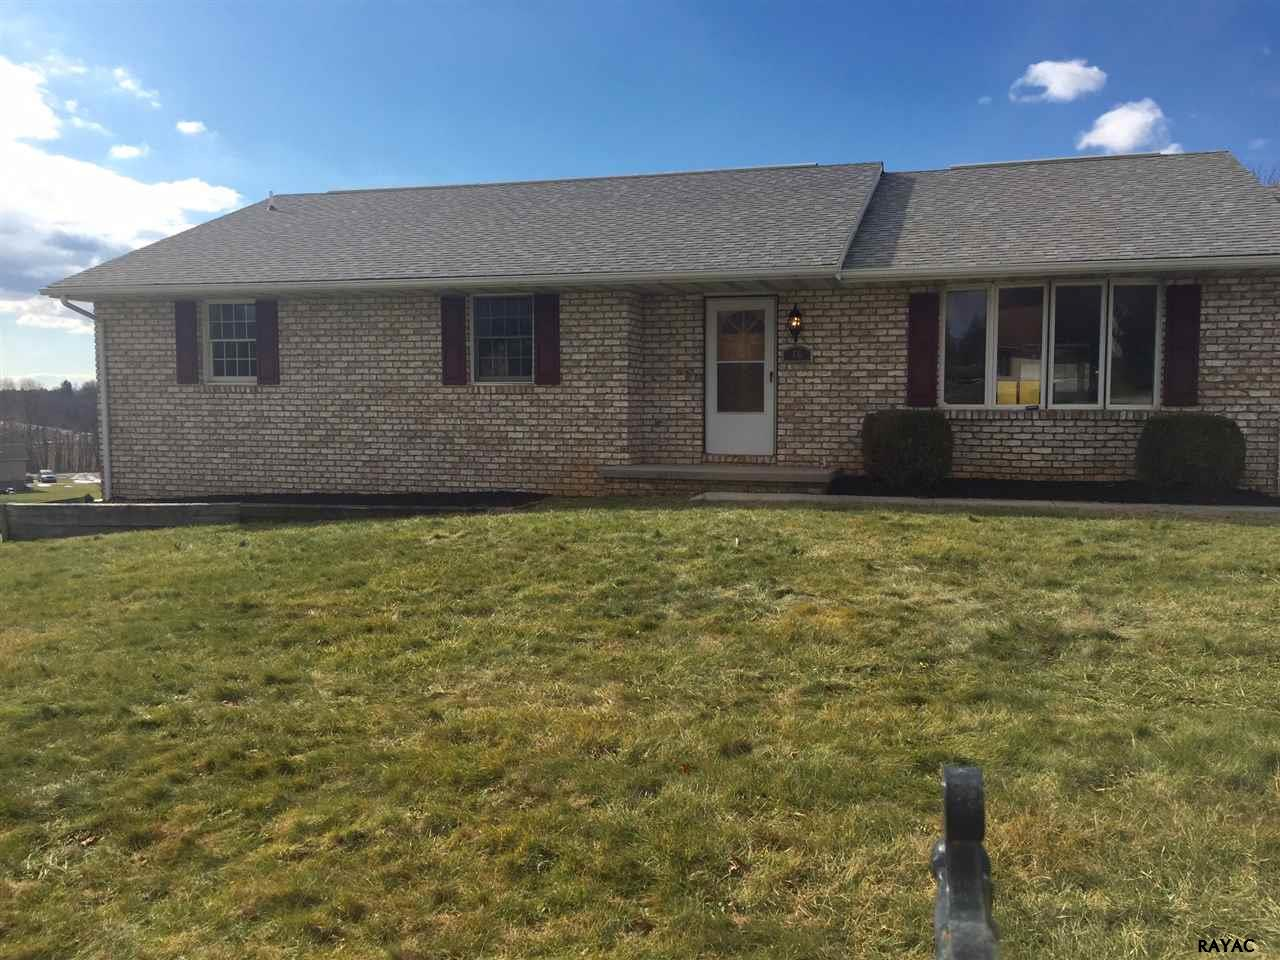 66 Harget Dr, Hanover, PA 17331